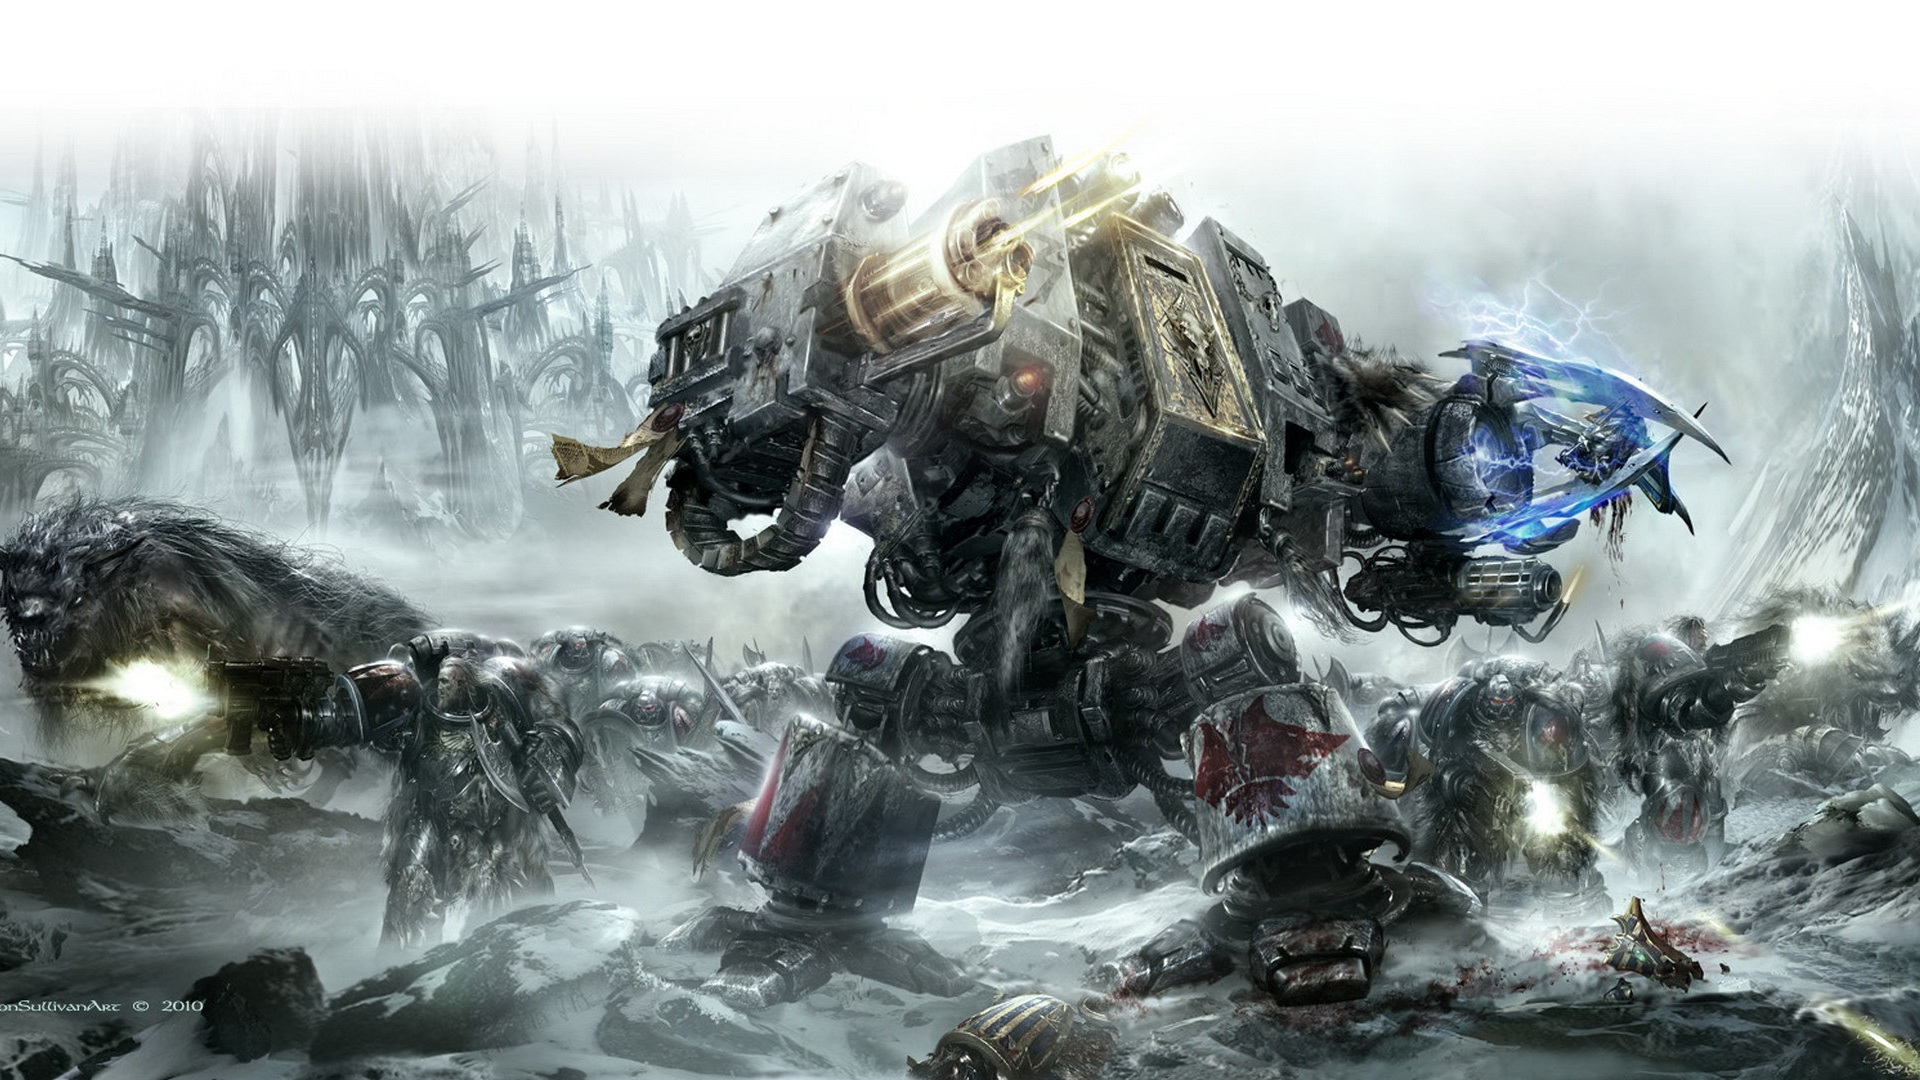 Wallpapers And Other Space Marine Related Art Warhammer 40000 1920x1080